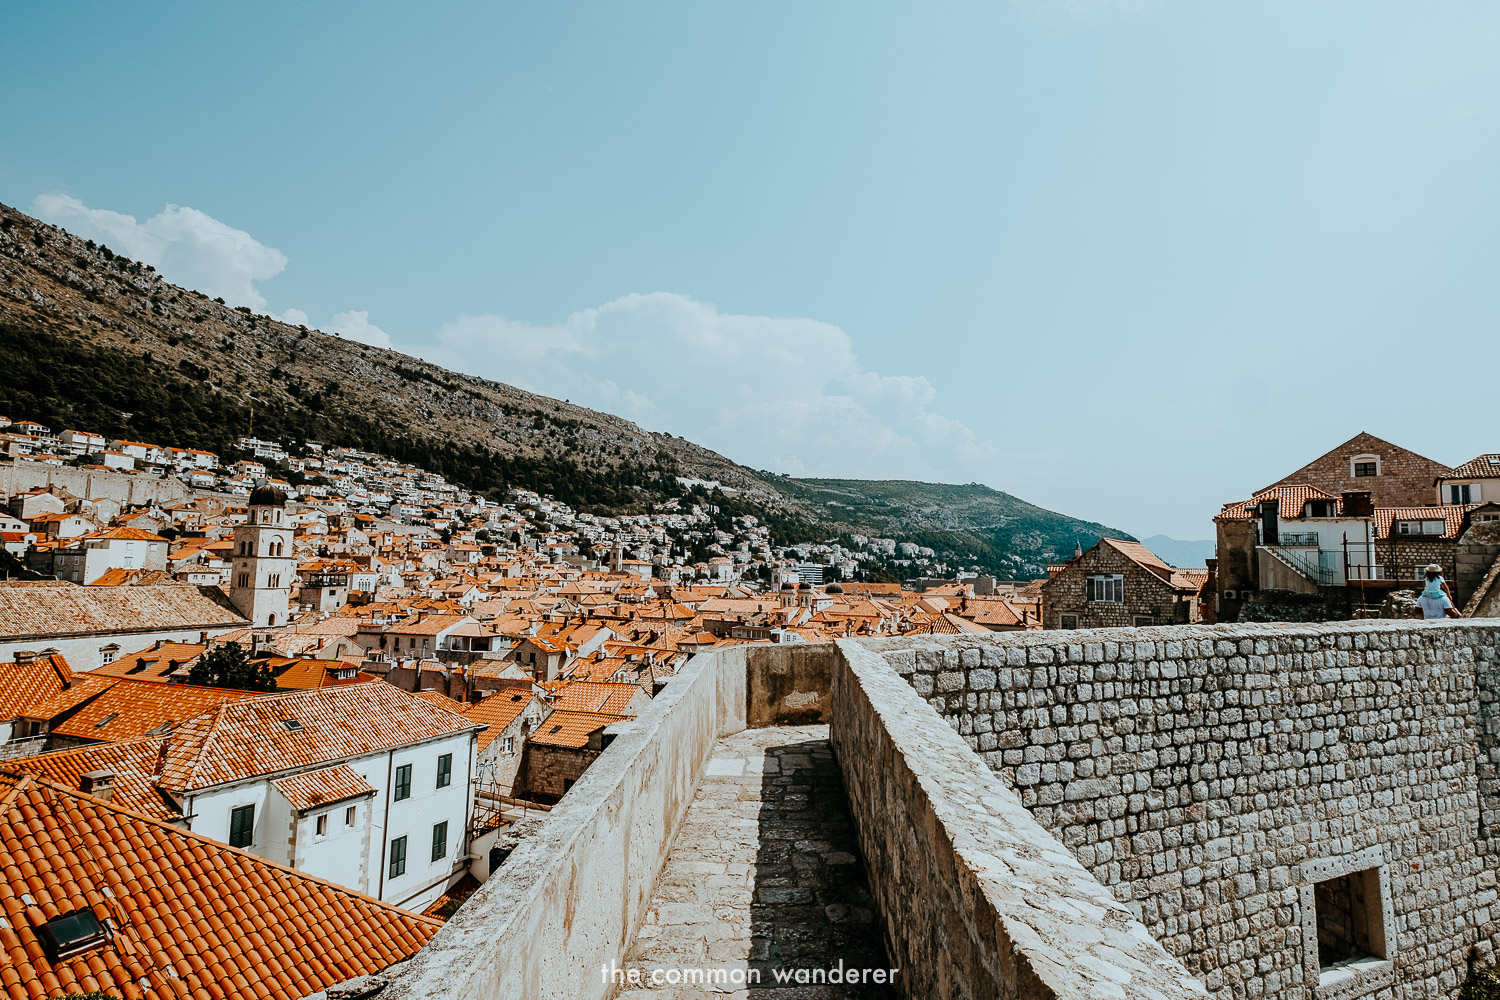 What to do in Dubrovnik? Explore the famous city walls